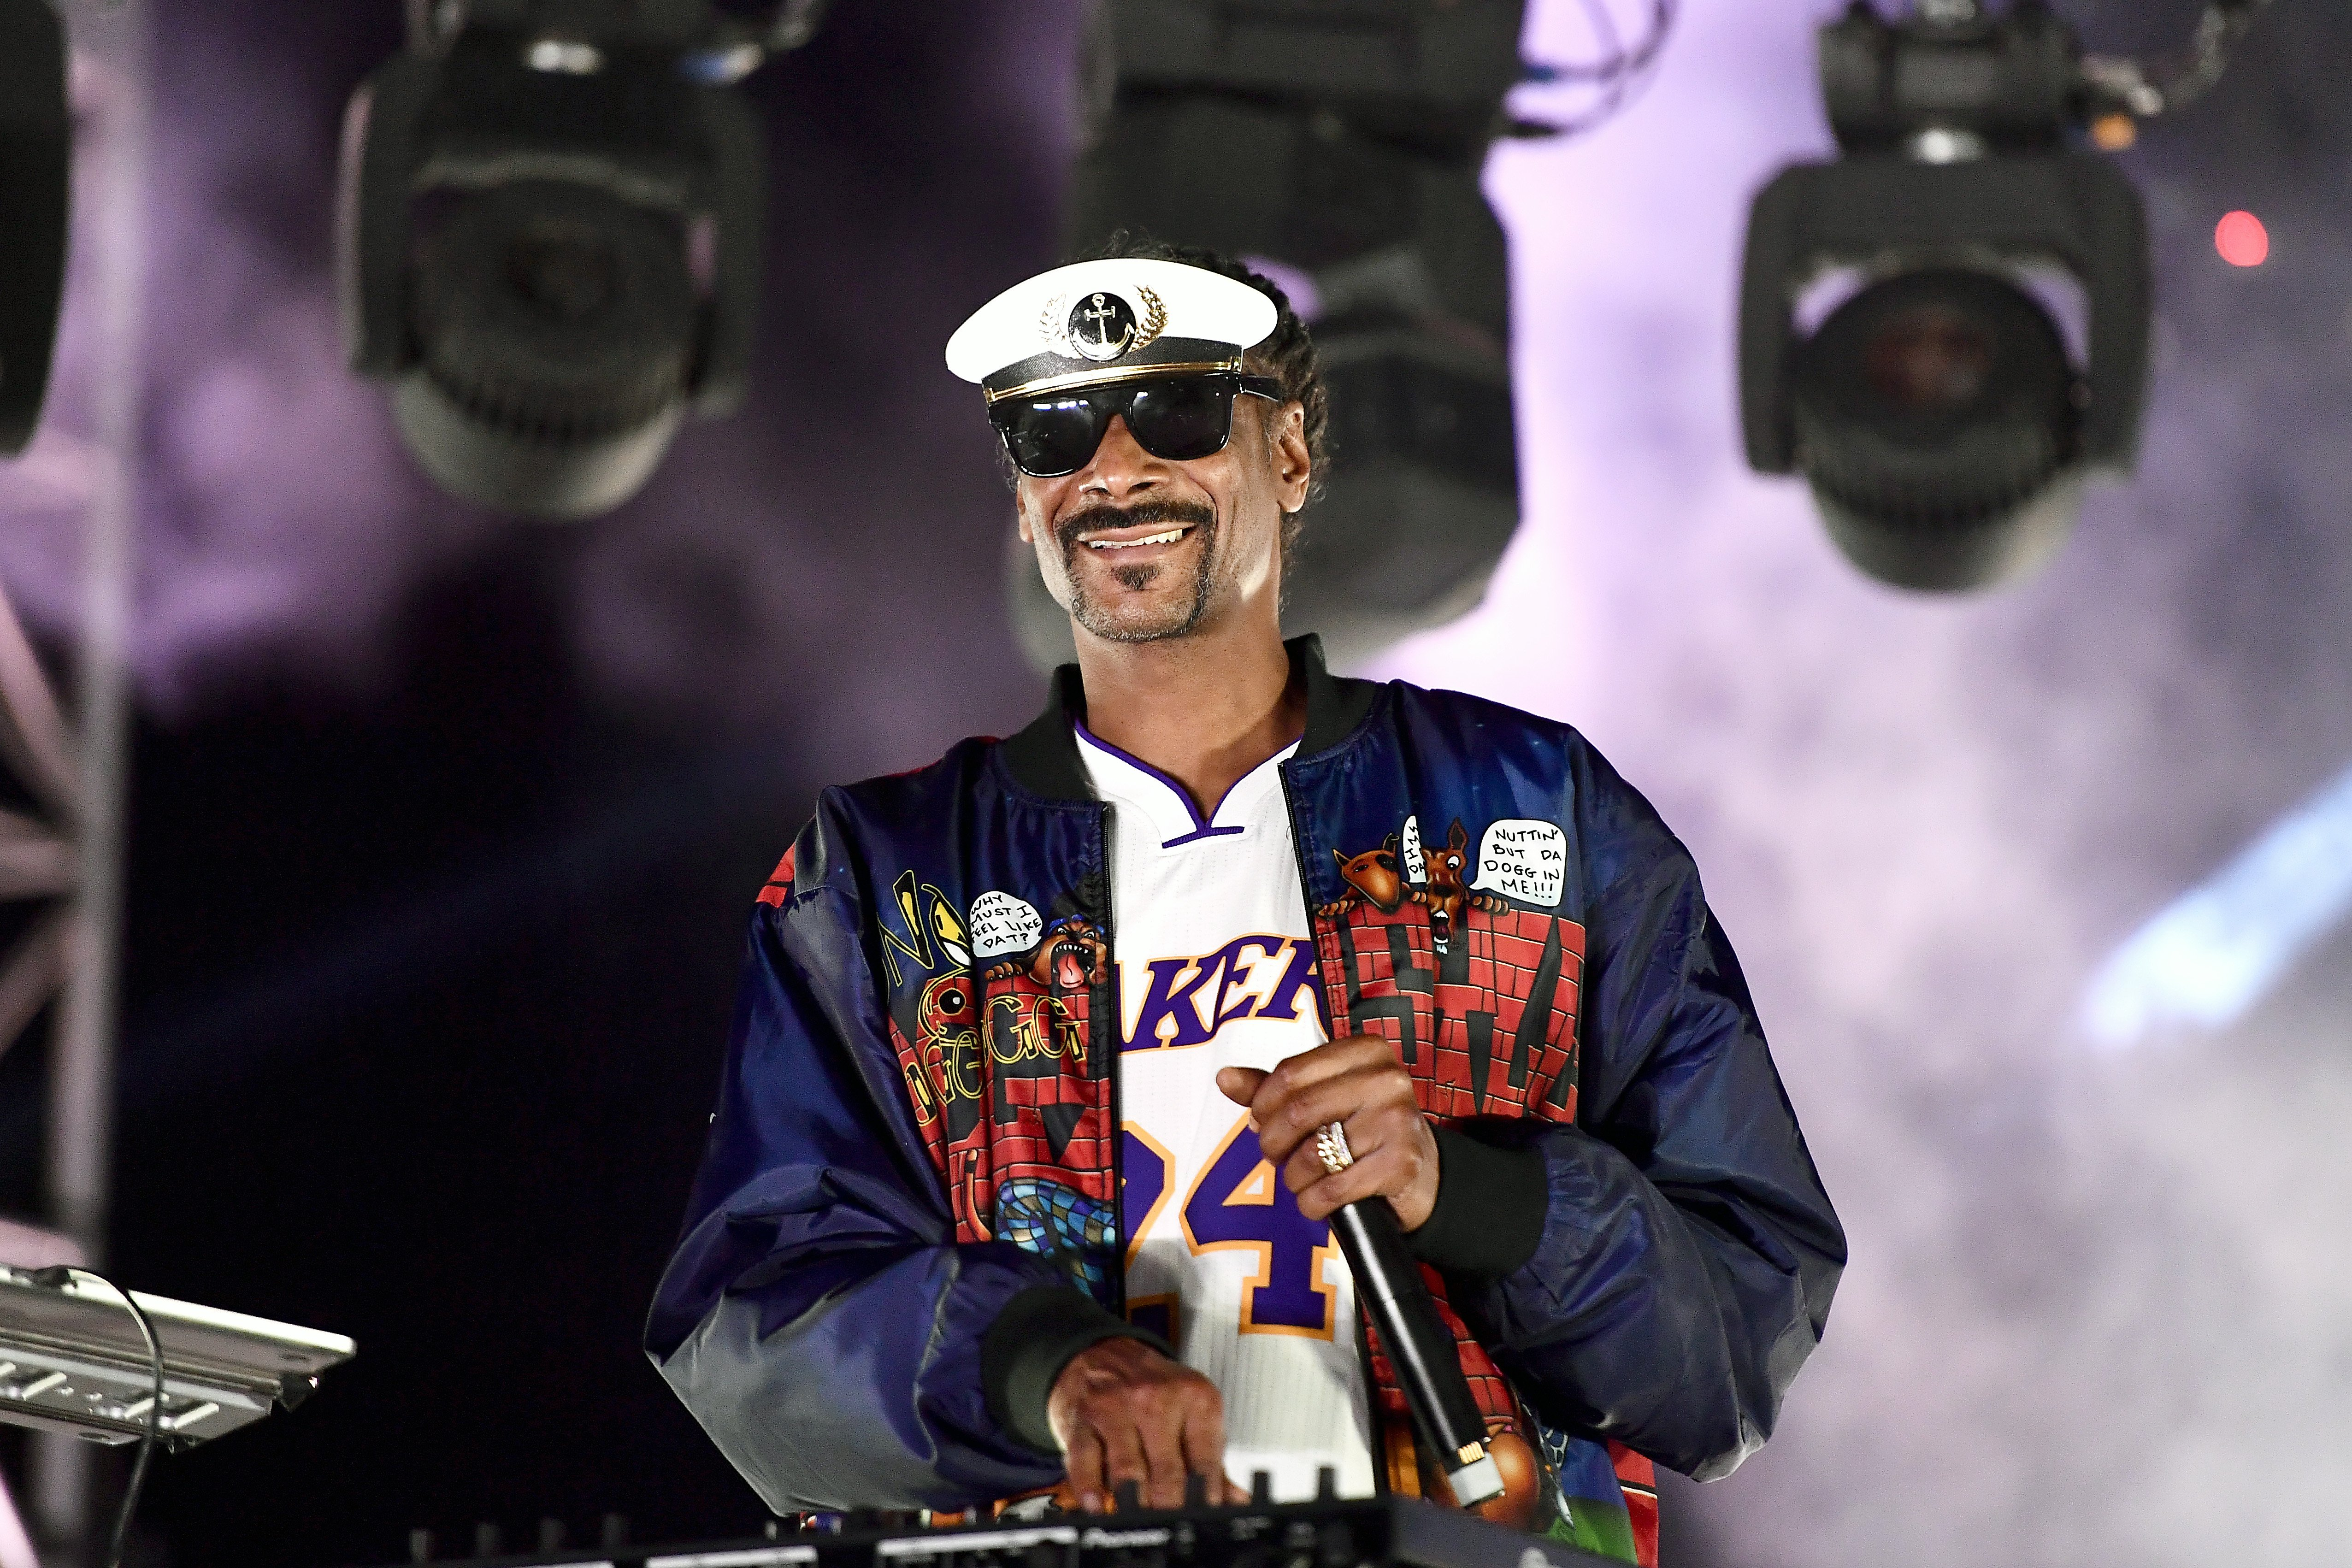 """Snoop Dogg at the """"Concerts in Your Car"""" drive-in concert on October 2, 2020 in Ventura, California. 